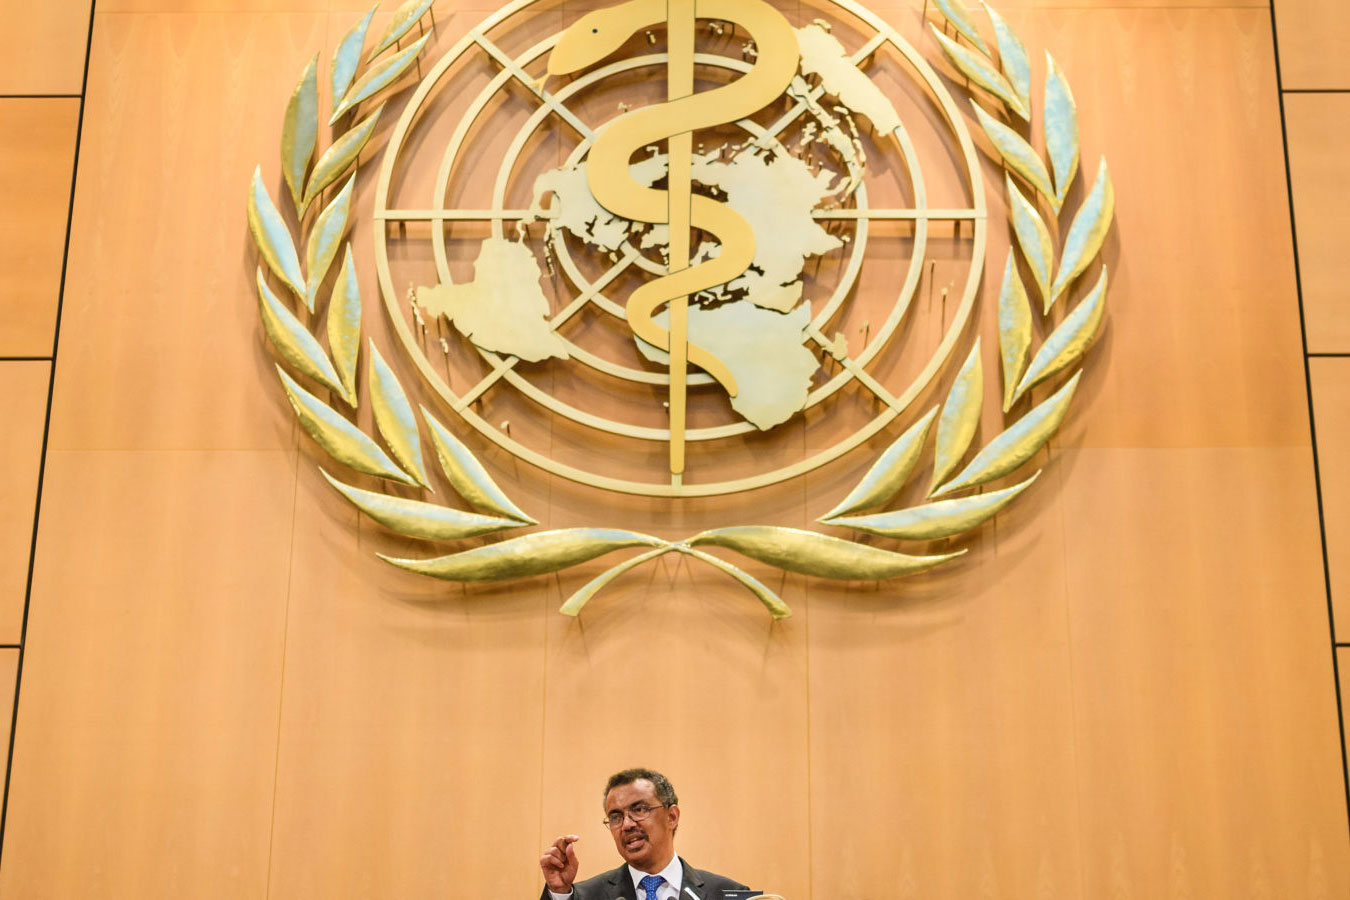 Image from Stat news article – WHO Director-General Tedros Adhanom Ghebreyesus FABRICE COFFRINI/AFP/GETTY IMAGES